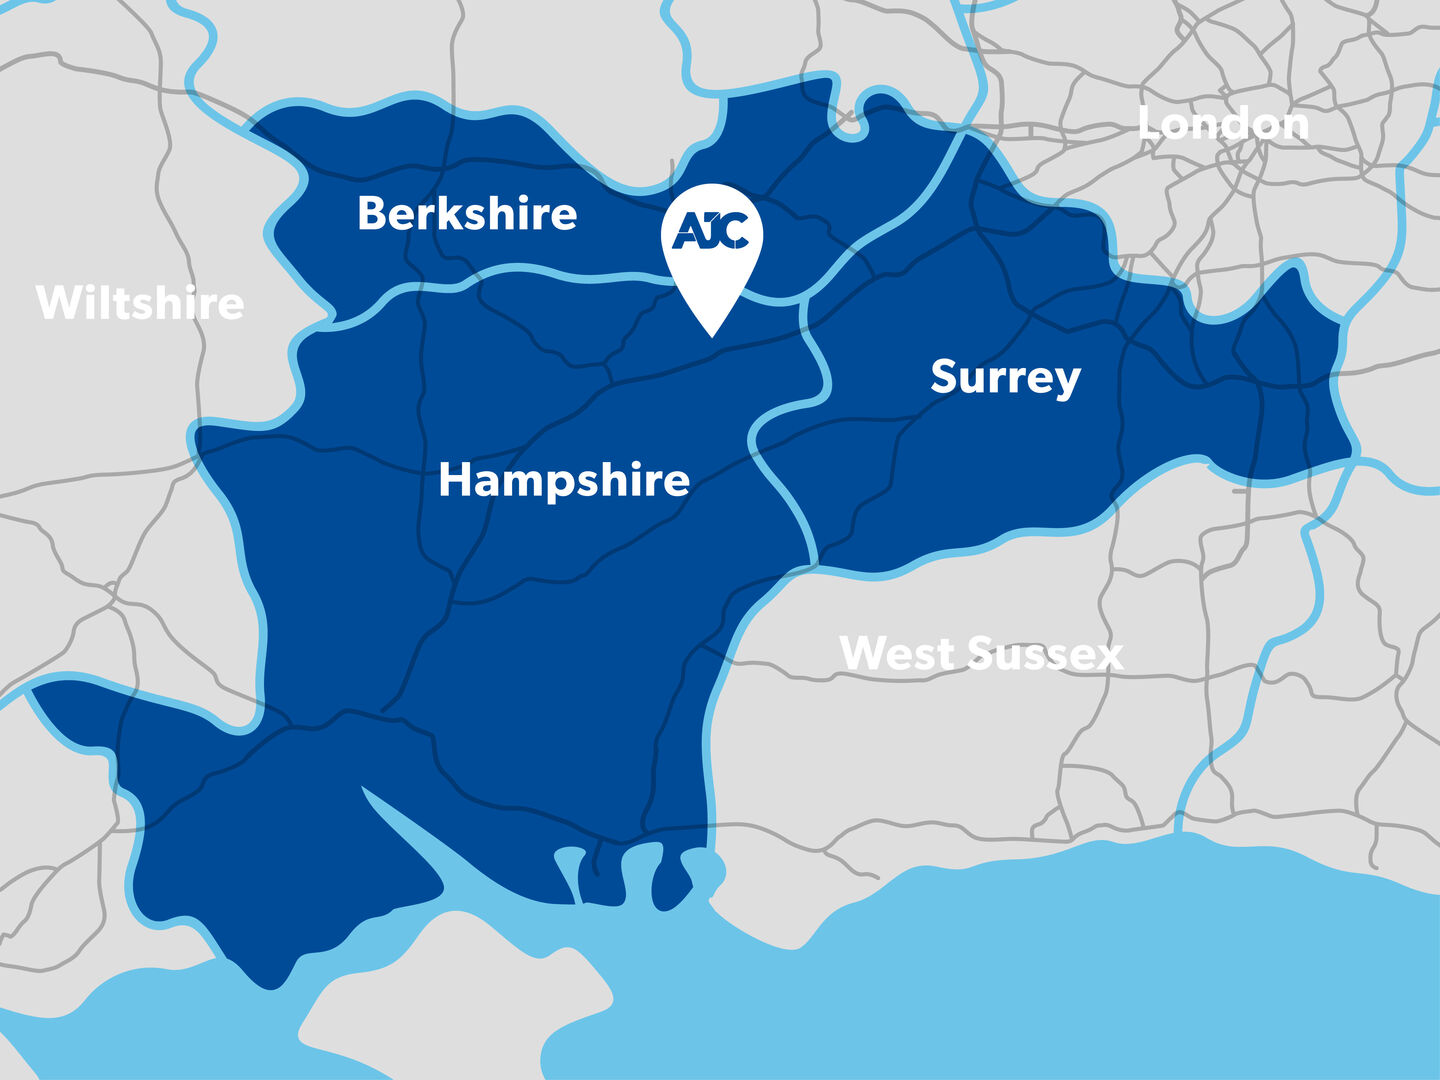 AJC Map - Where to find AJC